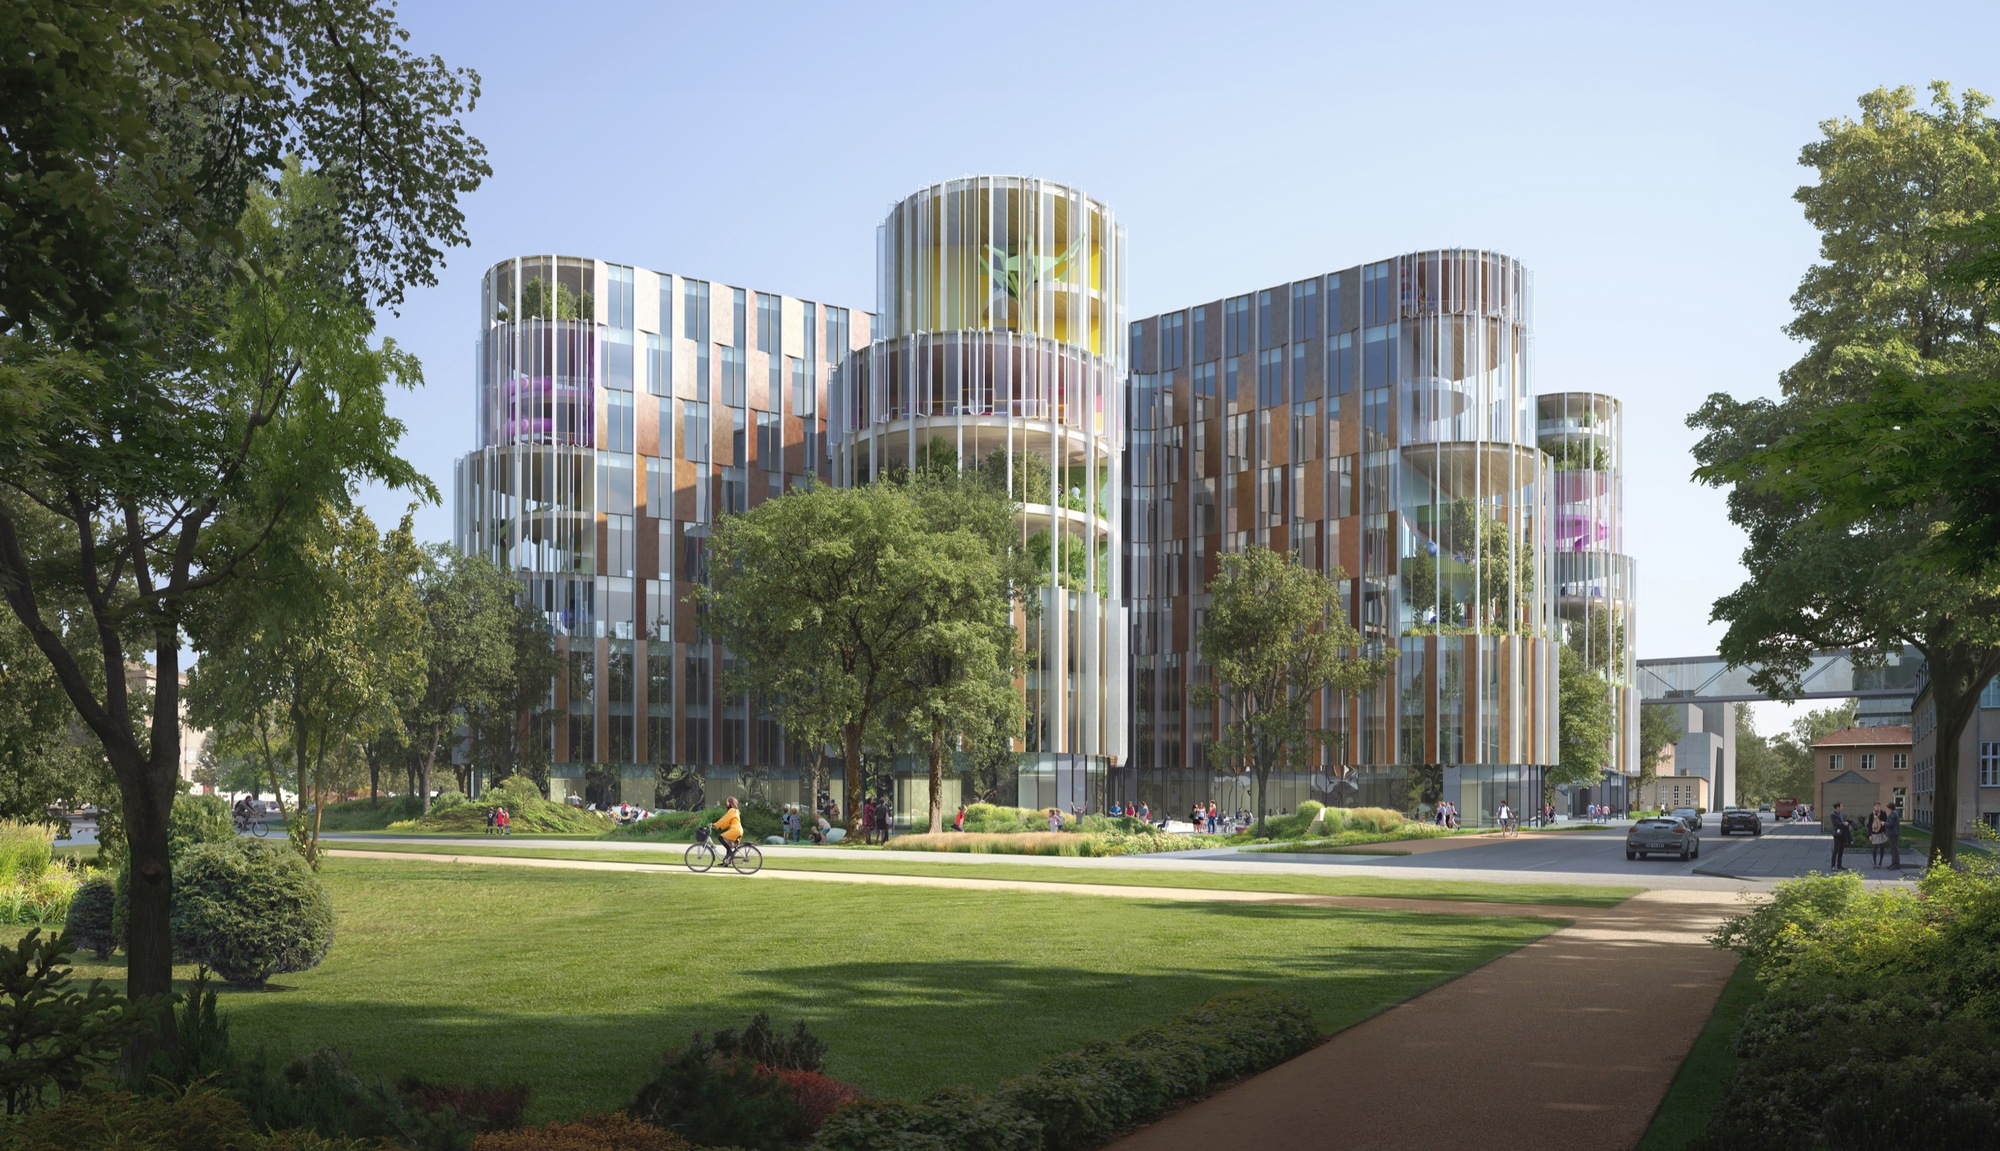 Architecture Exterior: 3XN Wins Competition For Copenhagen Children's Hospital